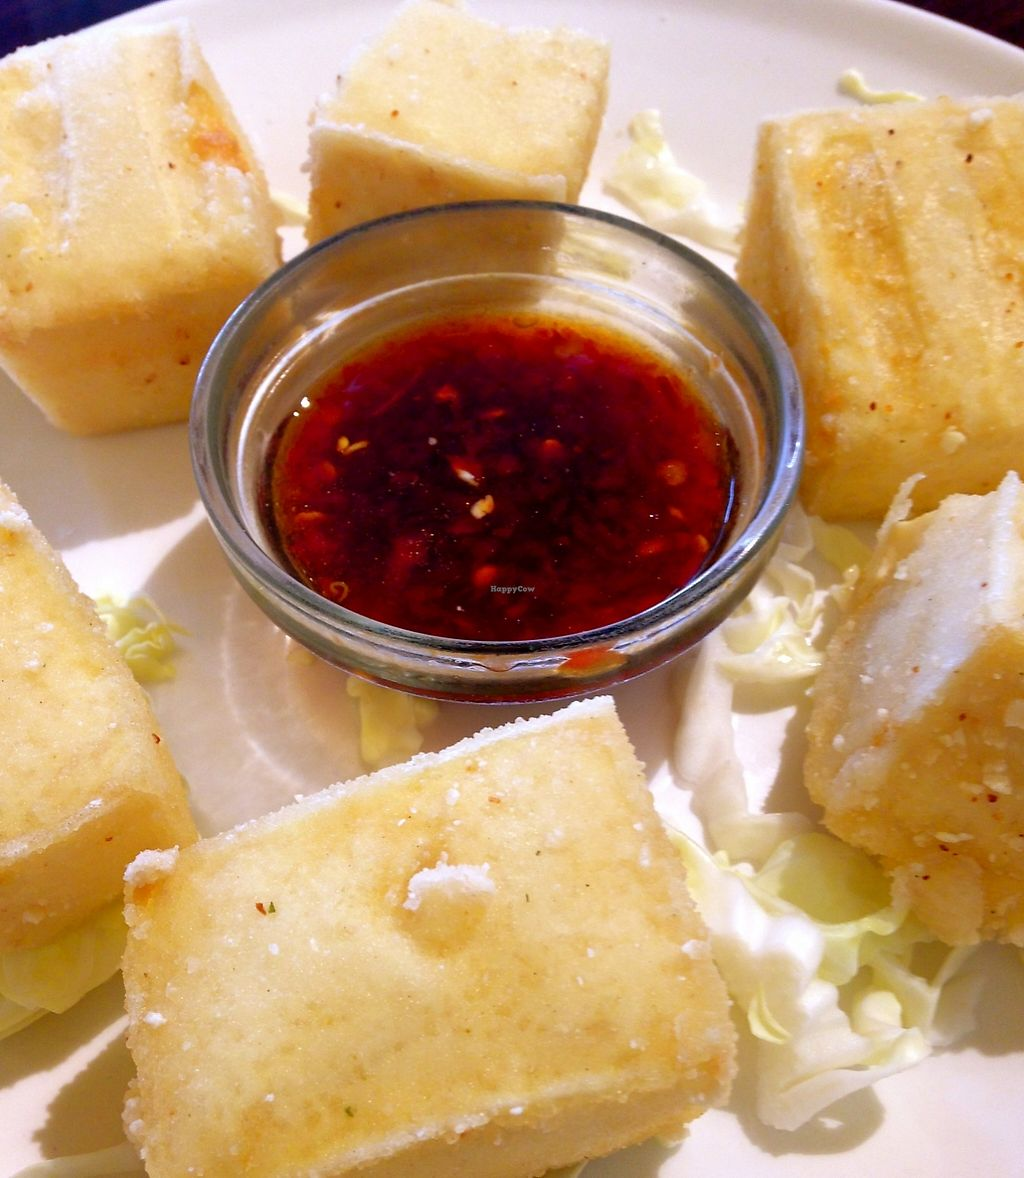 """Photo of Simple Joy  by <a href=""""/members/profile/myra975"""">myra975</a> <br/>Fried Tofu (6 pcs) $4.95 <br/> April 6, 2016  - <a href='/contact/abuse/image/24209/199259'>Report</a>"""